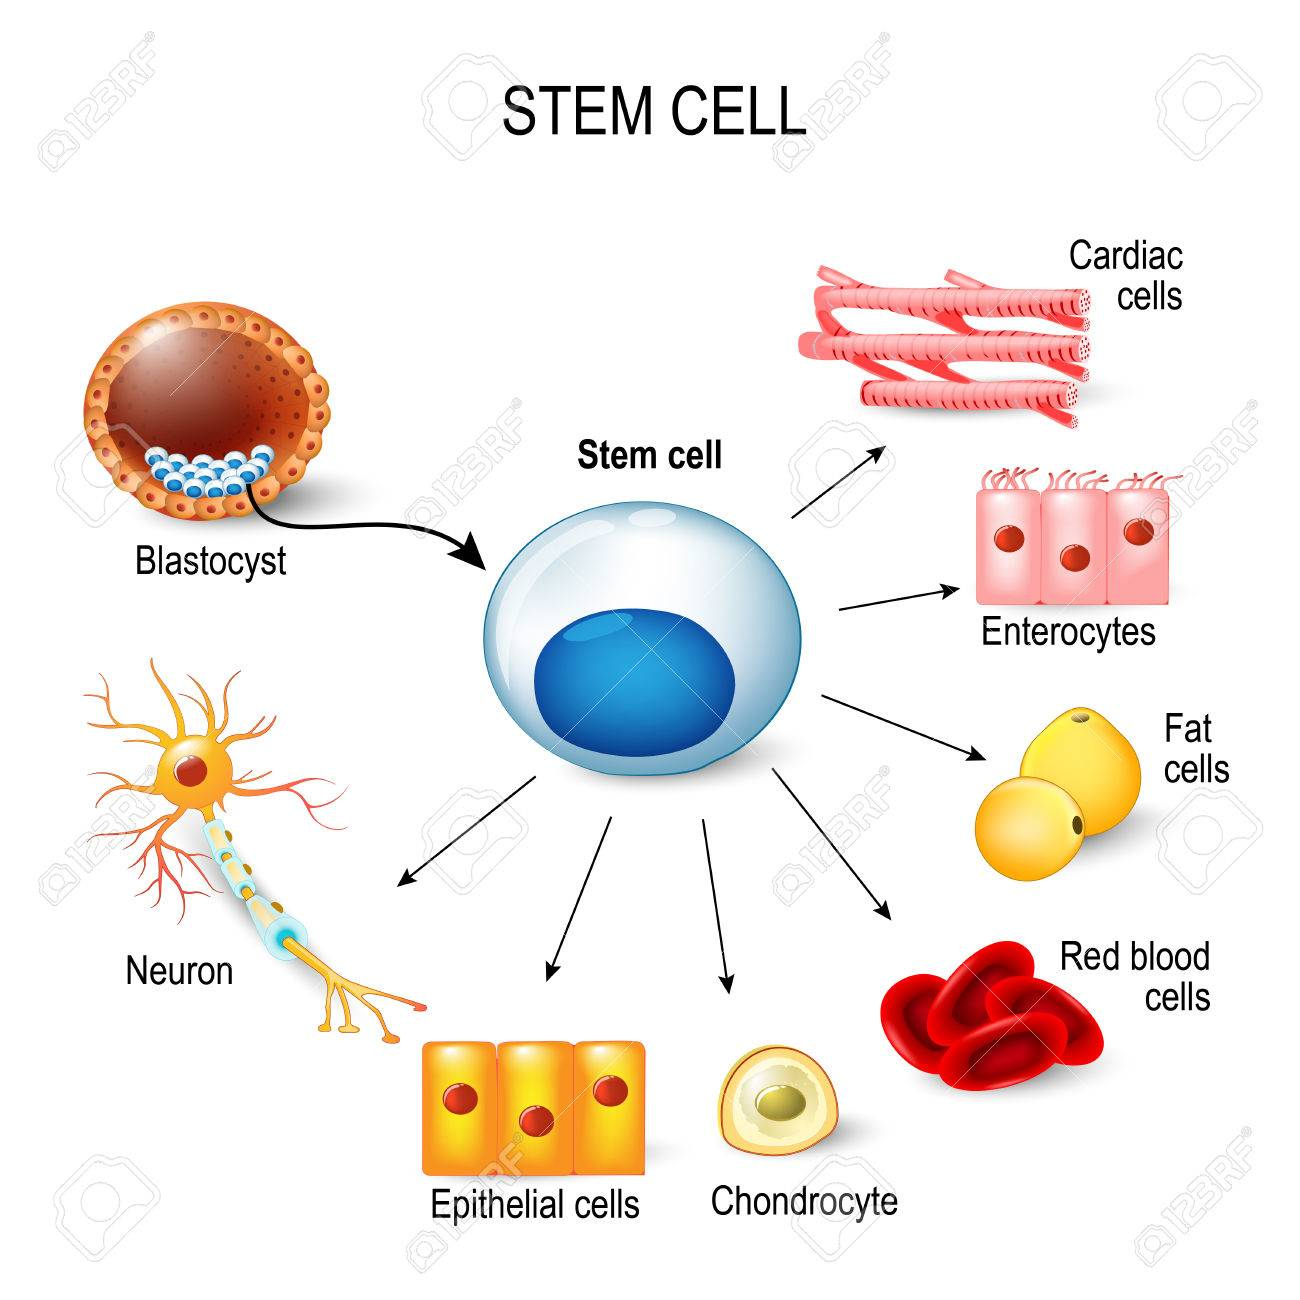 stem cells. These inner cell mass from a blastocyst. These stem cells can become any tissue in the body. for example: neuron, chondrocyte, enterocytes, red blood cells, muscle, fat or epithelial cells - 73524099